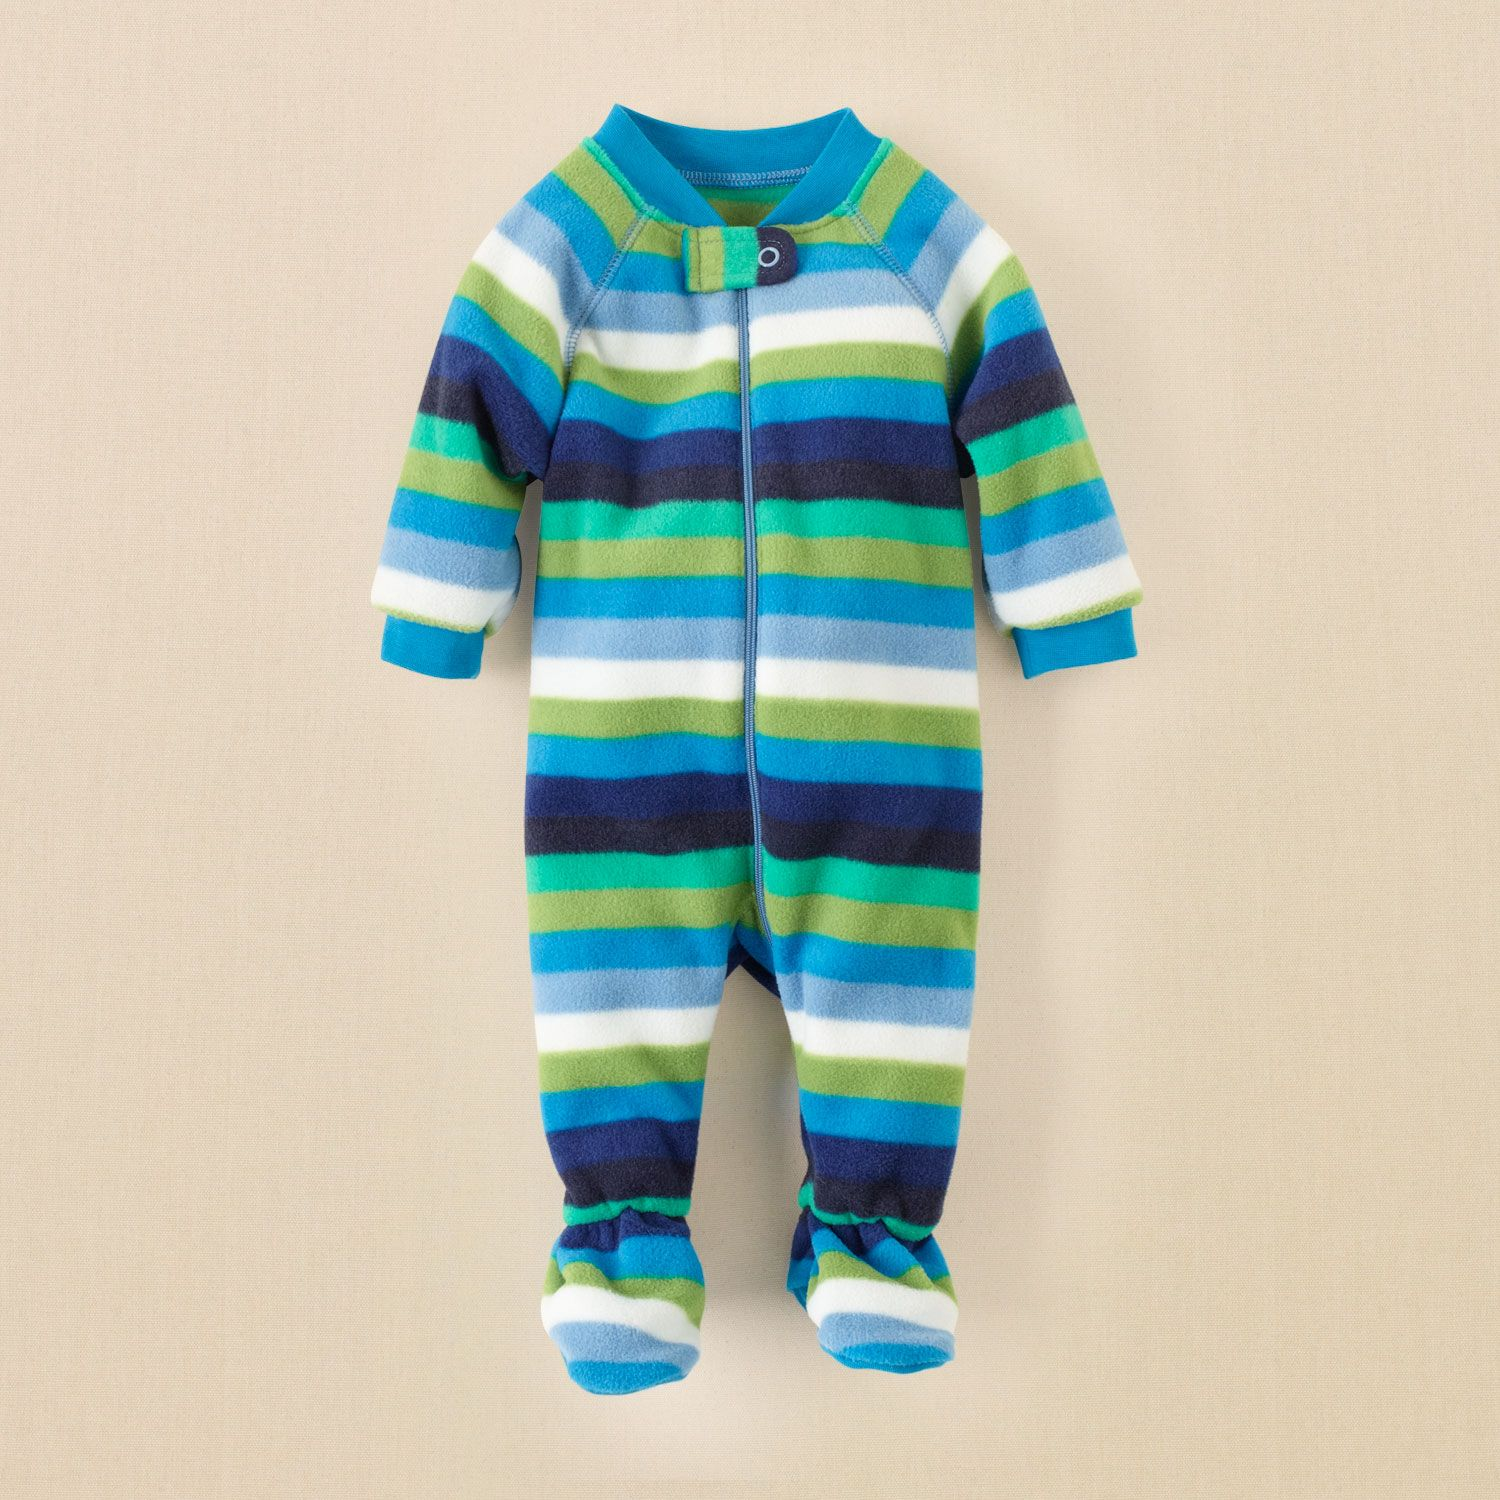 piece sleepers of products items lot img sleeper frogs size one sleeve girl long newborn baby